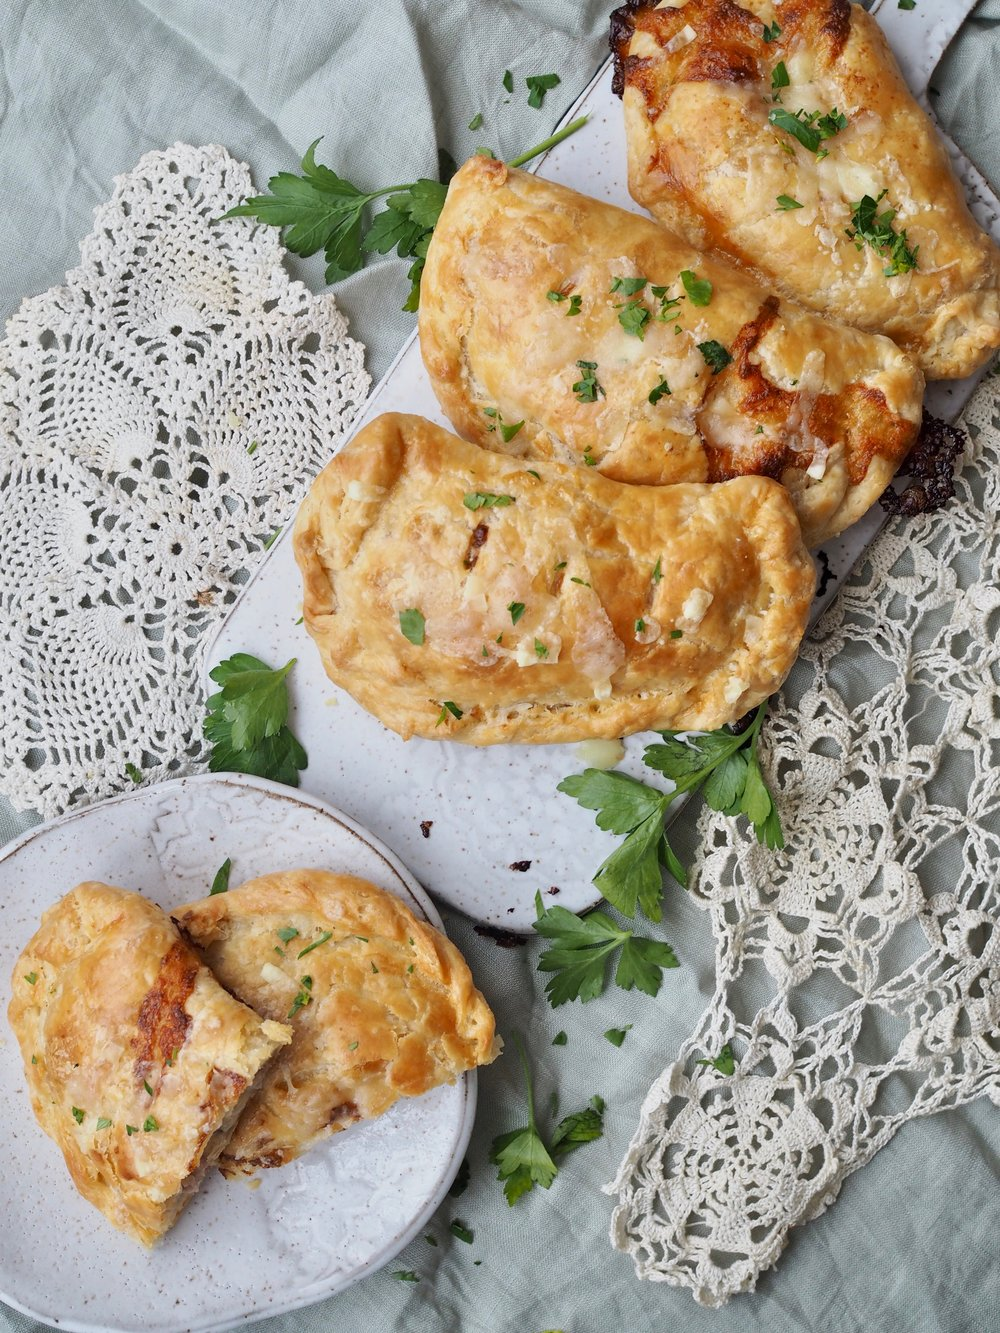 Croque Monsieur Handpies - recipe by Ms. Cleaver